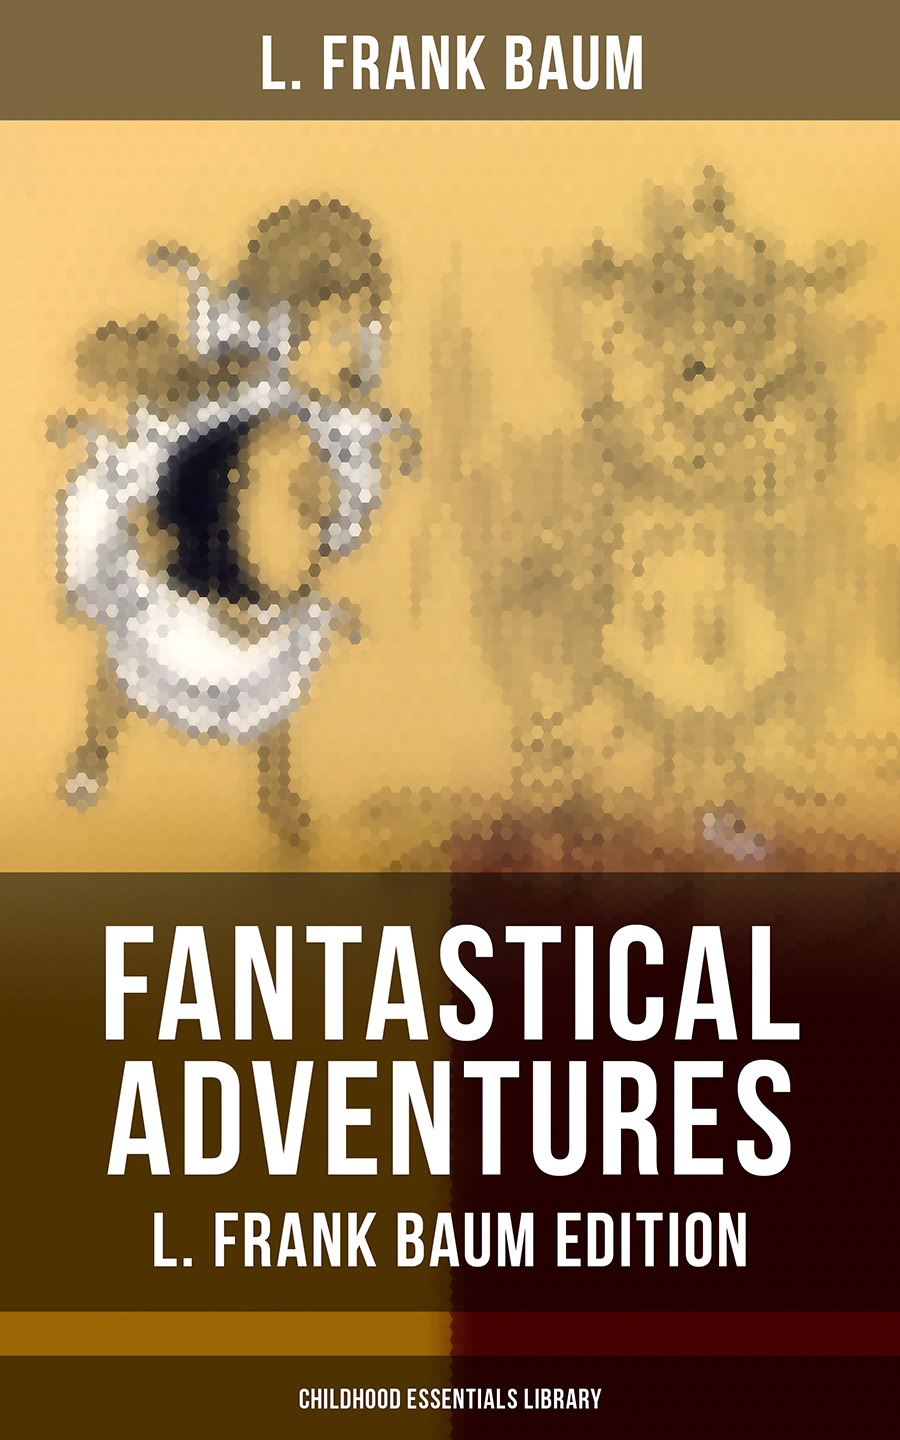 цена на Лаймен Фрэнк Баум FANTASTICAL ADVENTURES – L. Frank Baum Edition (Childhood Essentials Library)